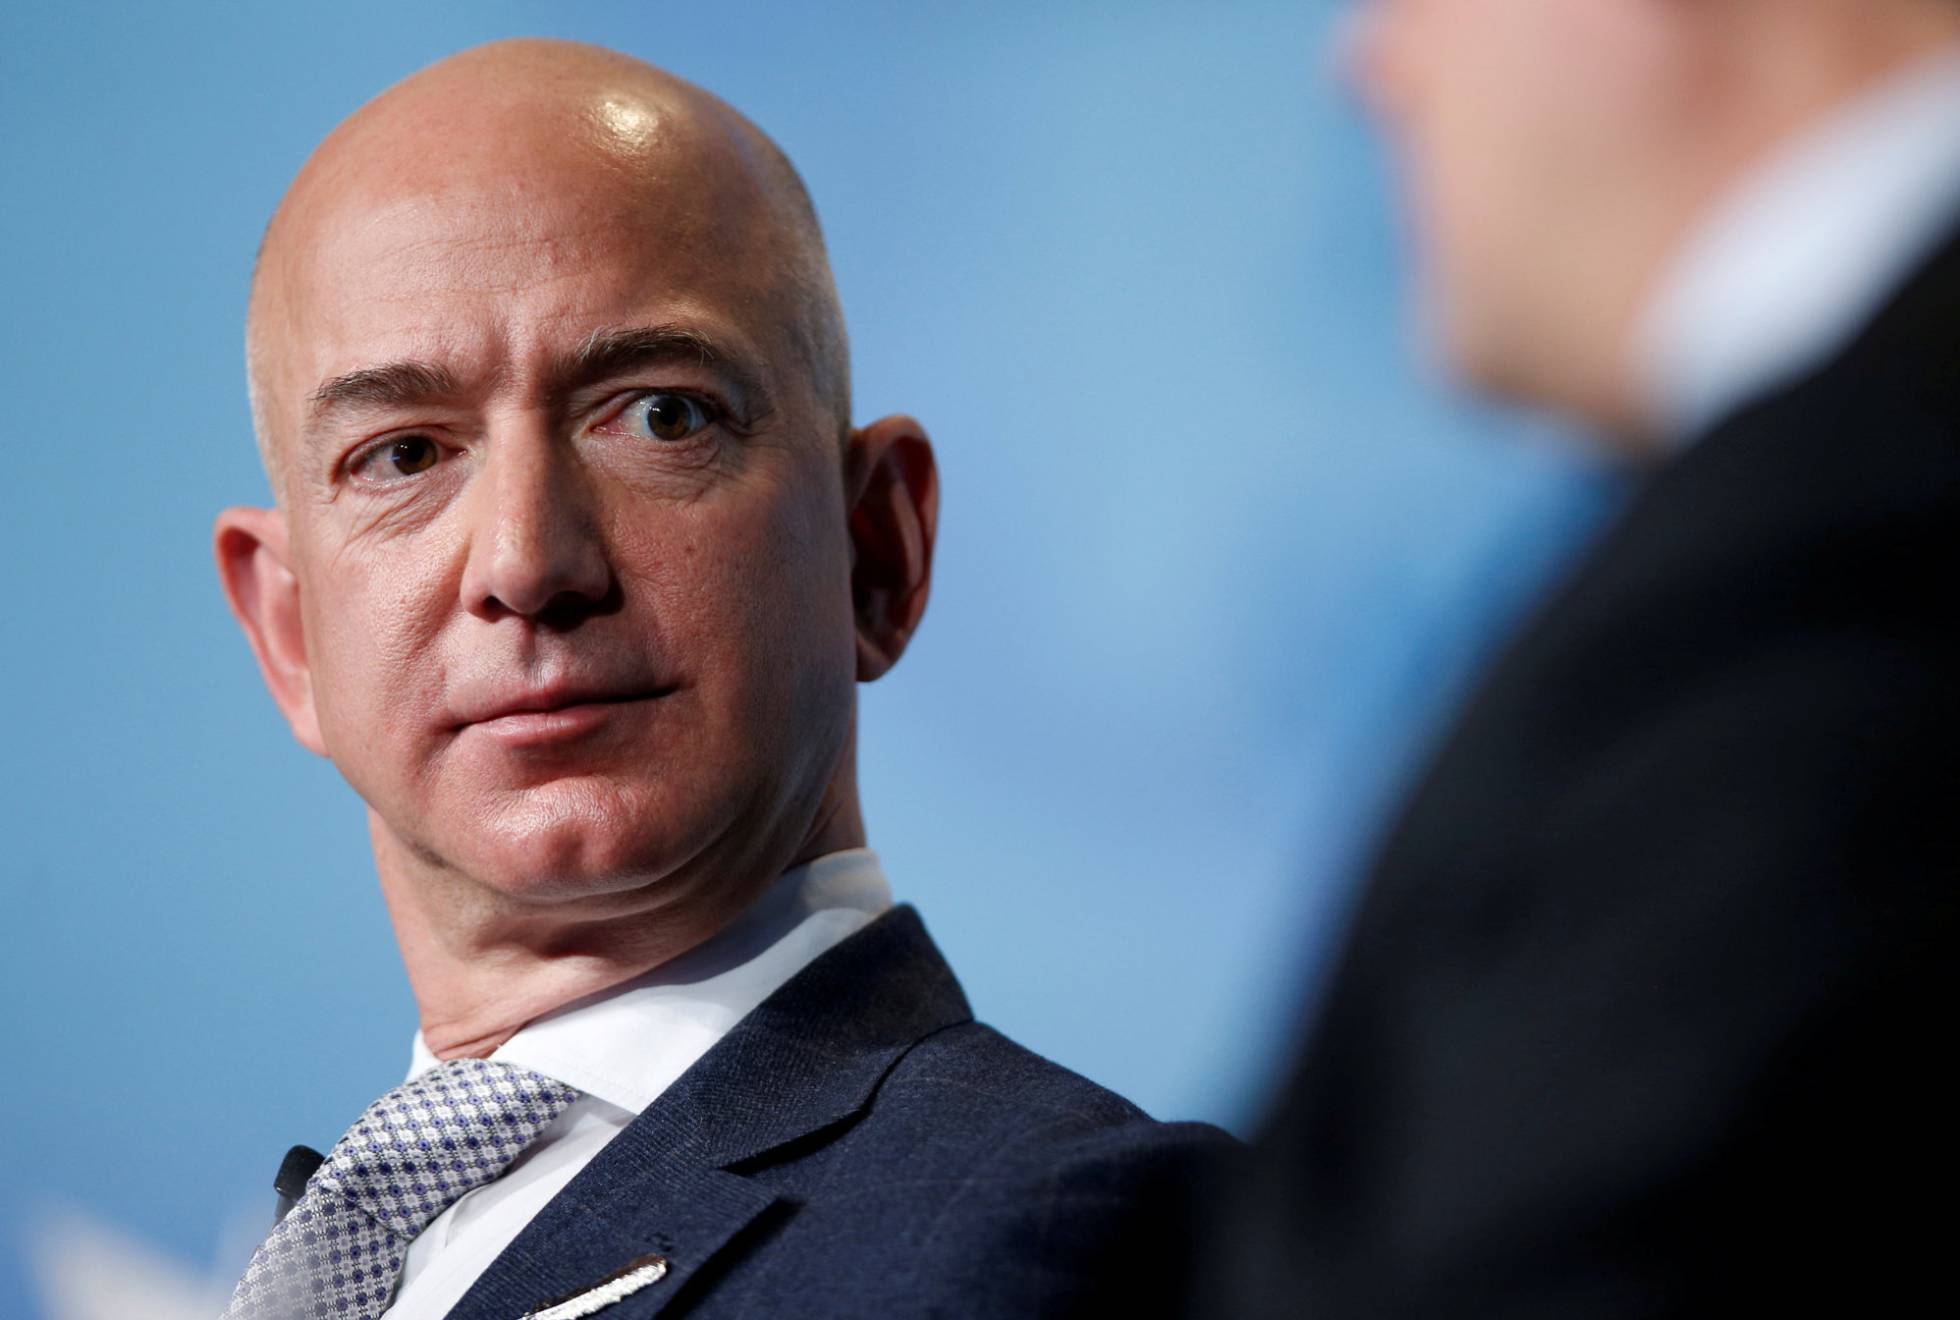 Jeff Bezos acusa de intento de extorsión a David Pecker, editor del 'National Enquirer' y amigo de Trump